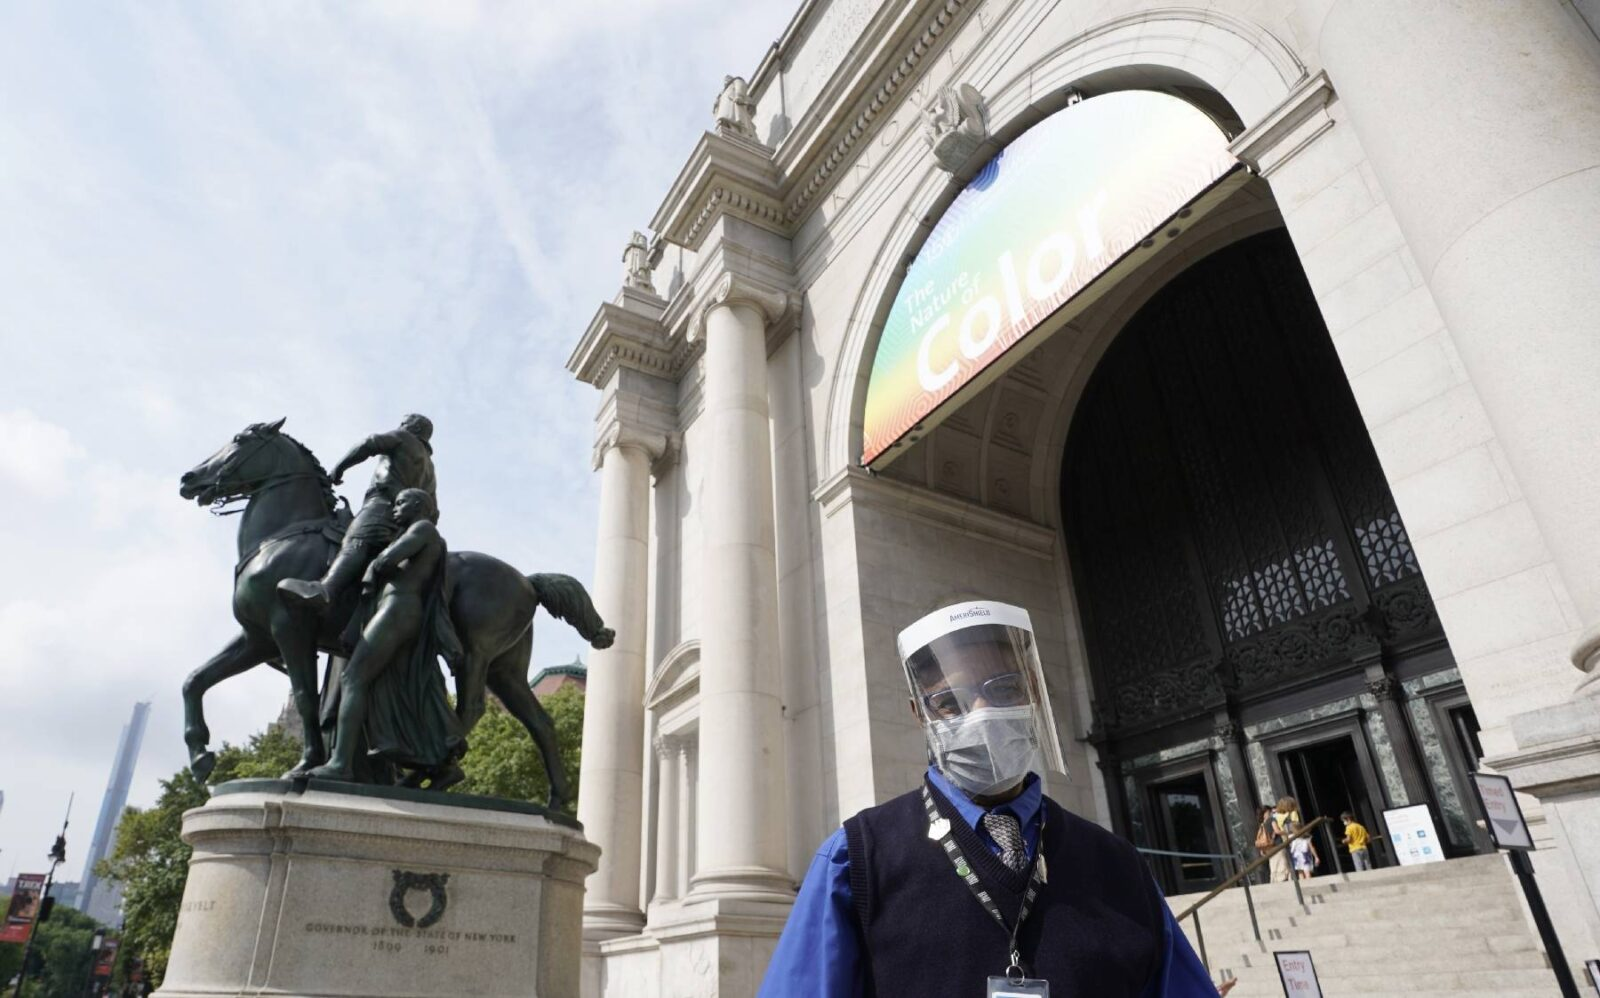 Museums in Crisis - New York State